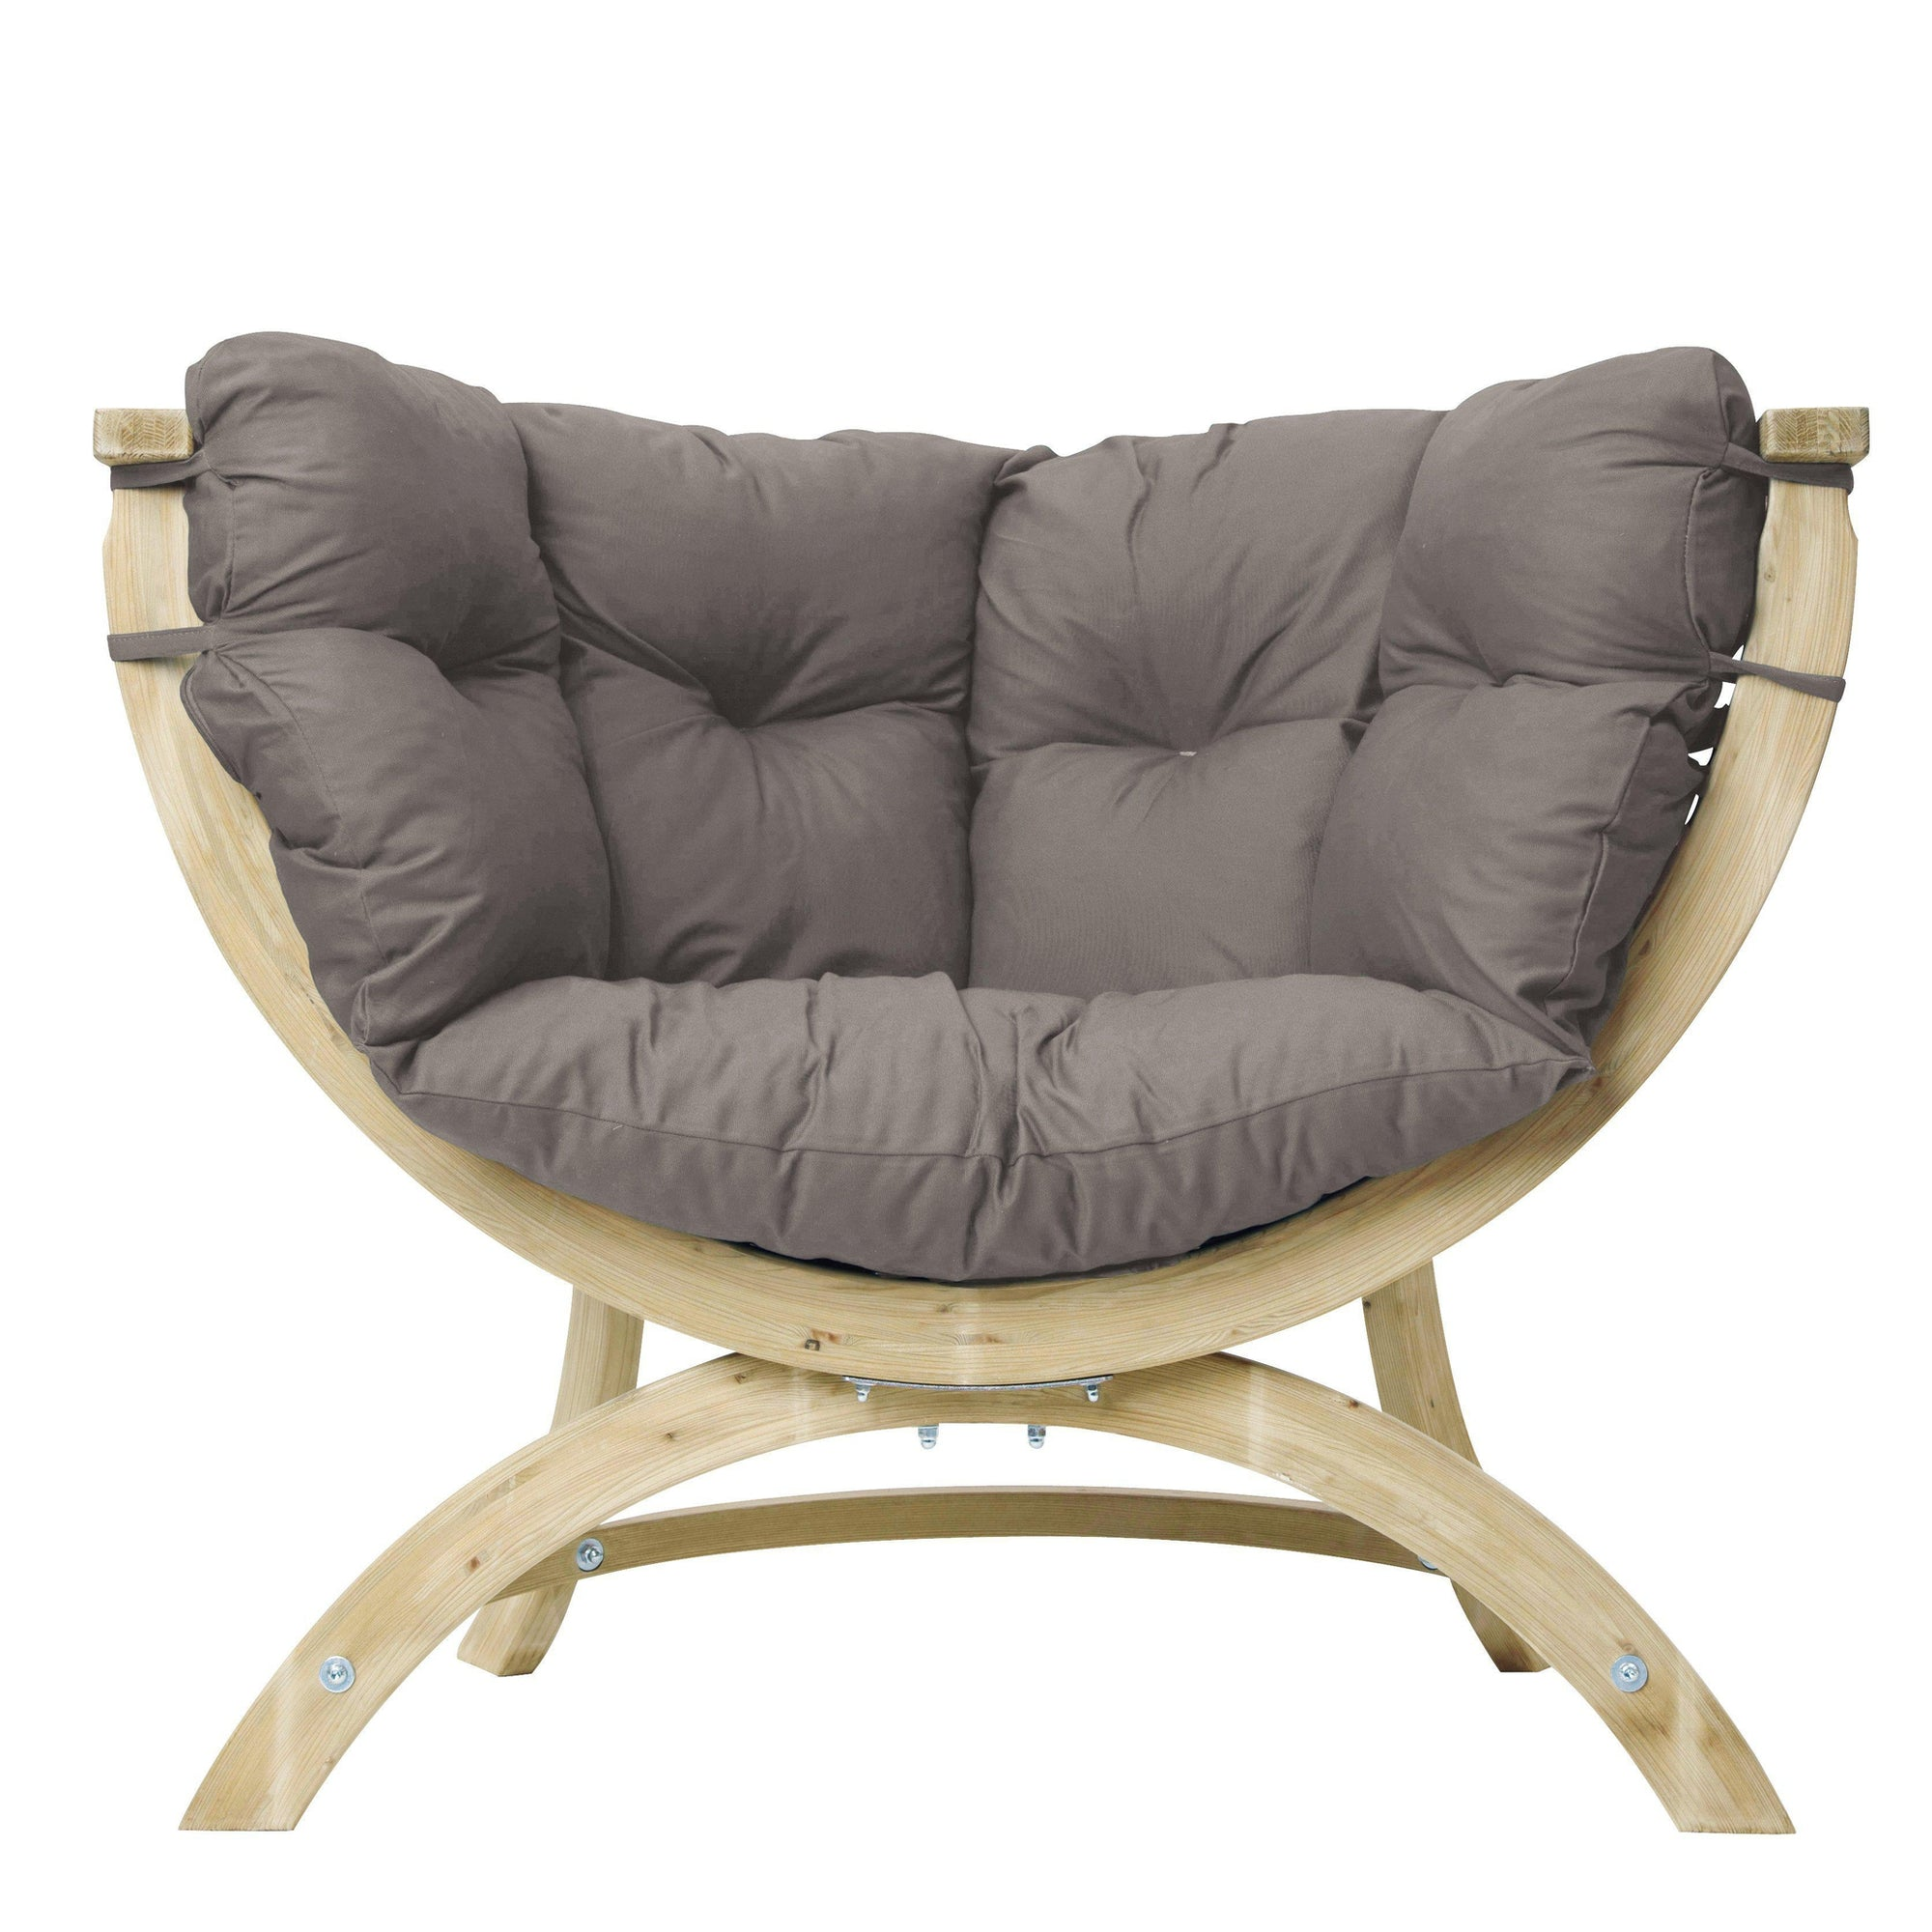 Siena UNO Chair, Taupe, from Byer of Maine